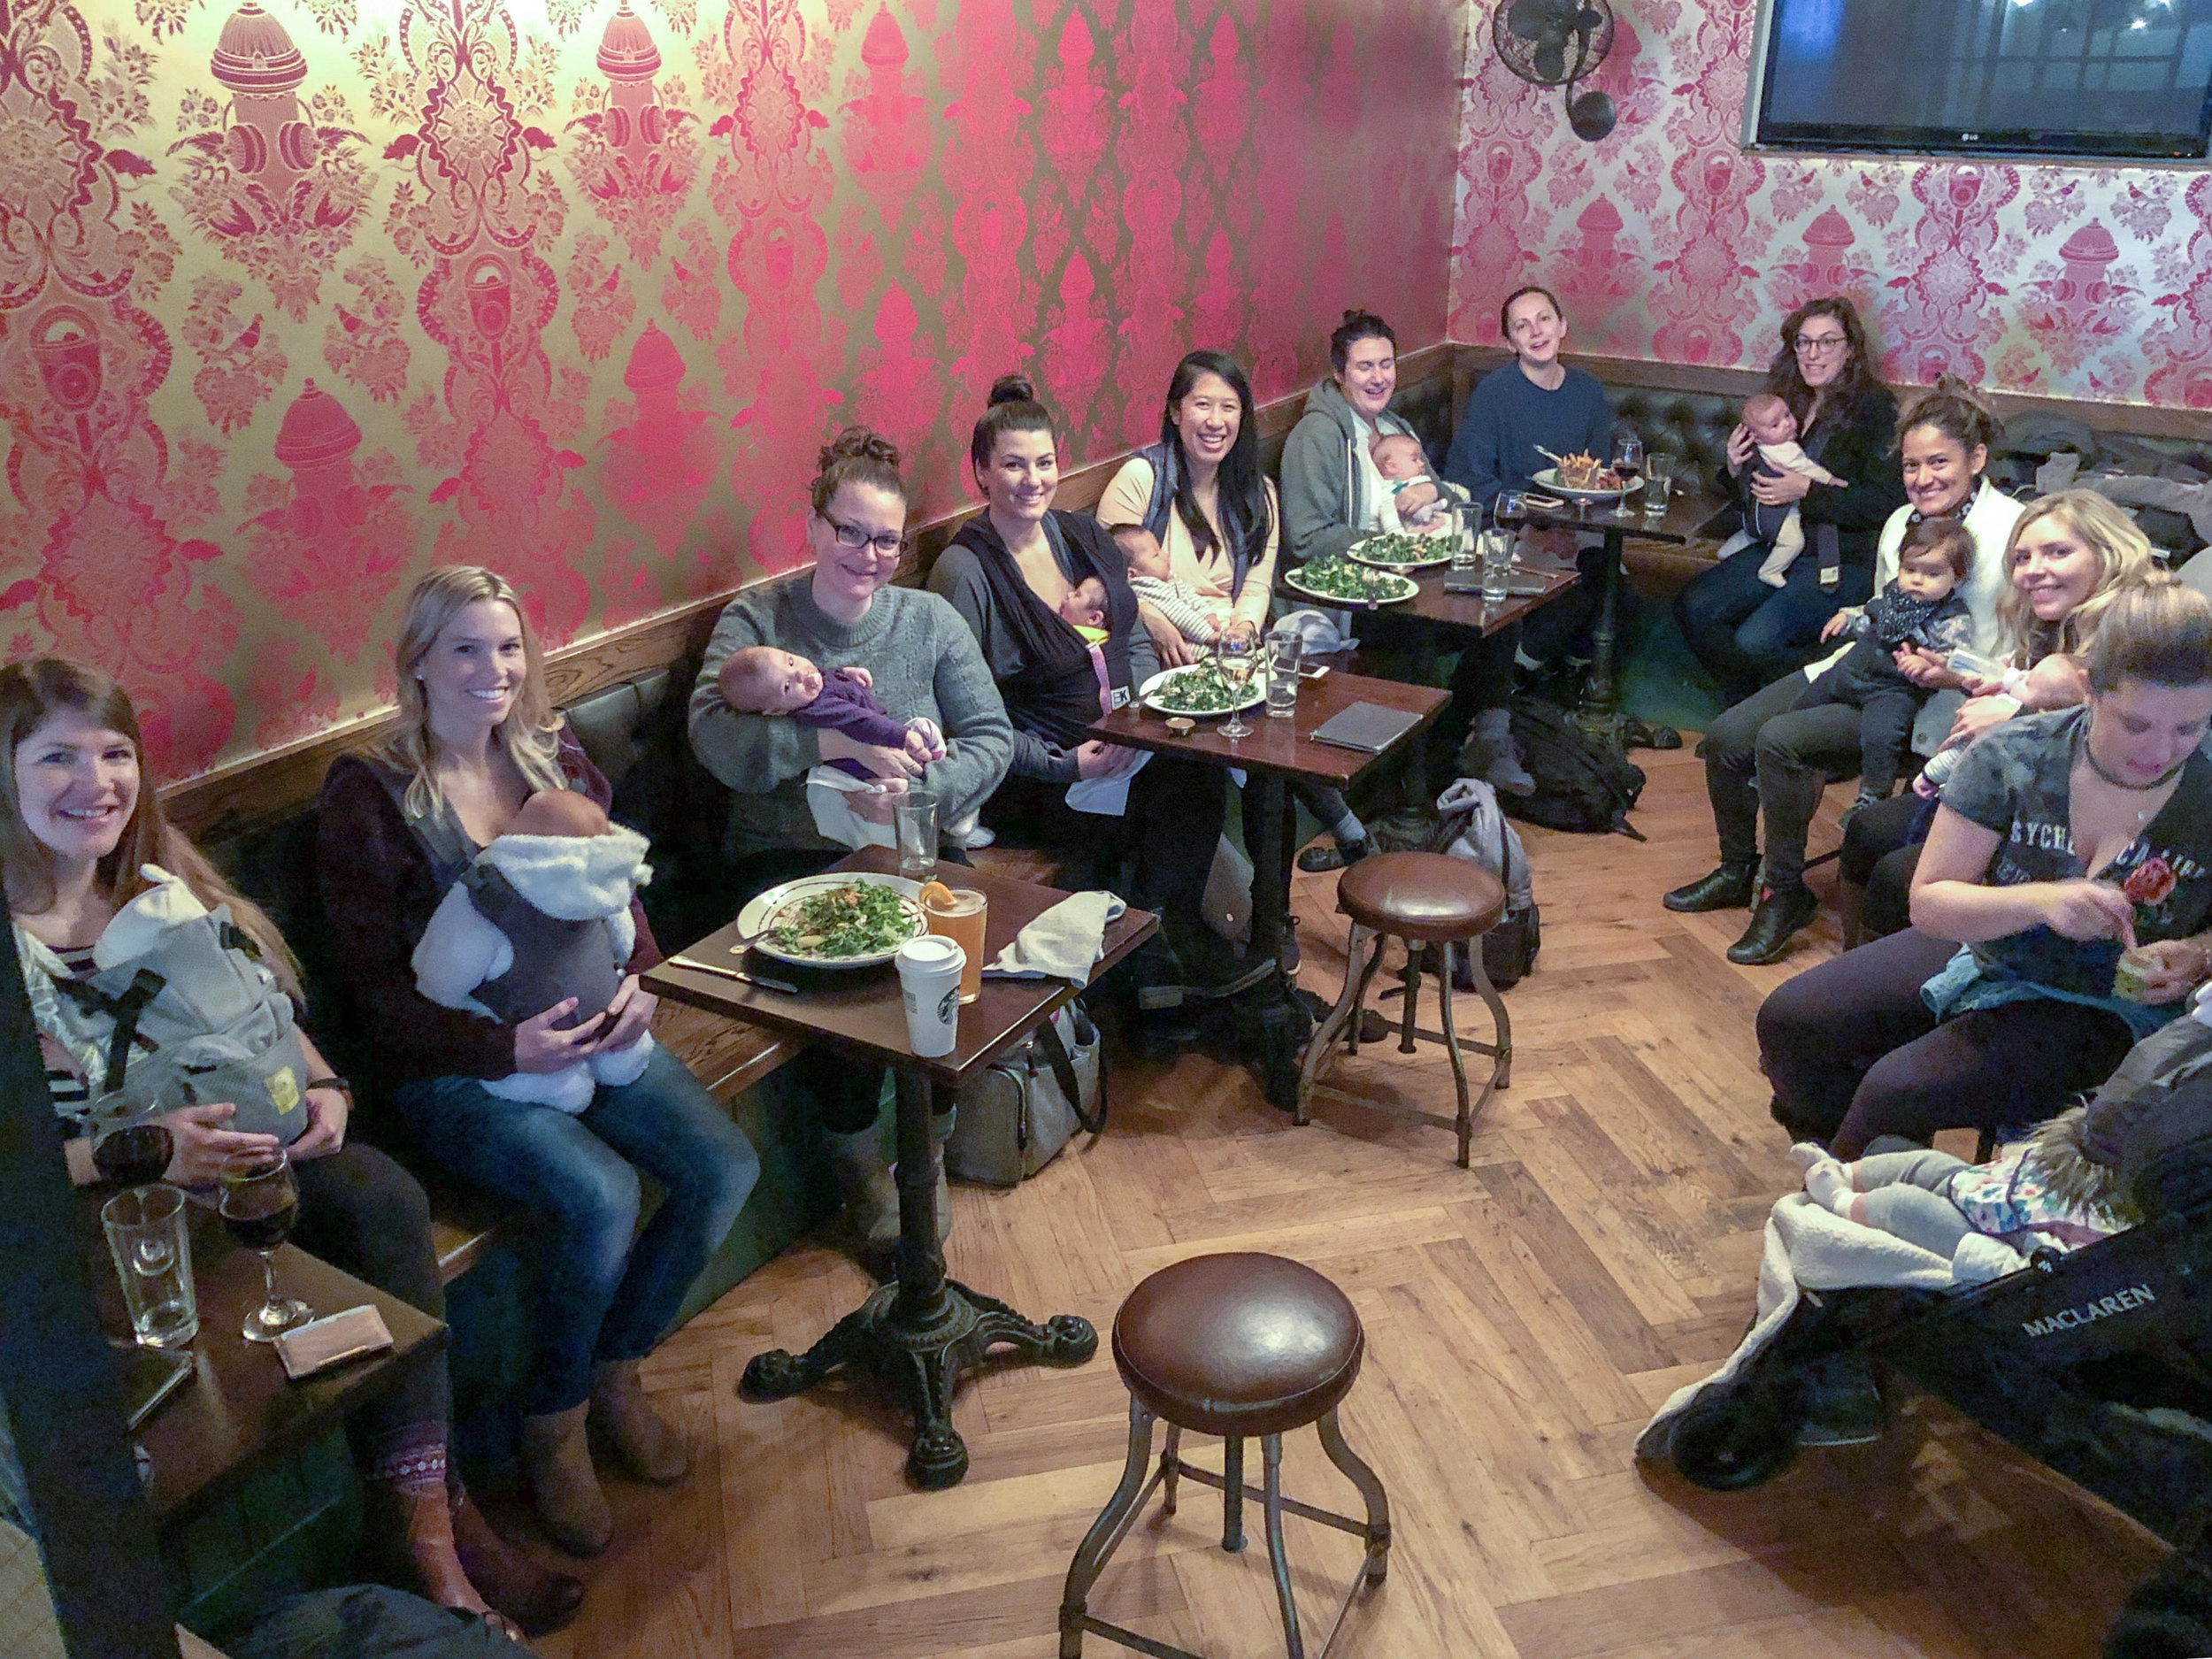 New Mom MeetUp - Our weekly meetups for new moms are a great way to connect with others in the neighborhood who have babies around the same age. First-time or second-time moms with babies 0-12 months are welcome to attend. Currently running in Union Square, UES, UWS, Tribeca and Williamsburg.